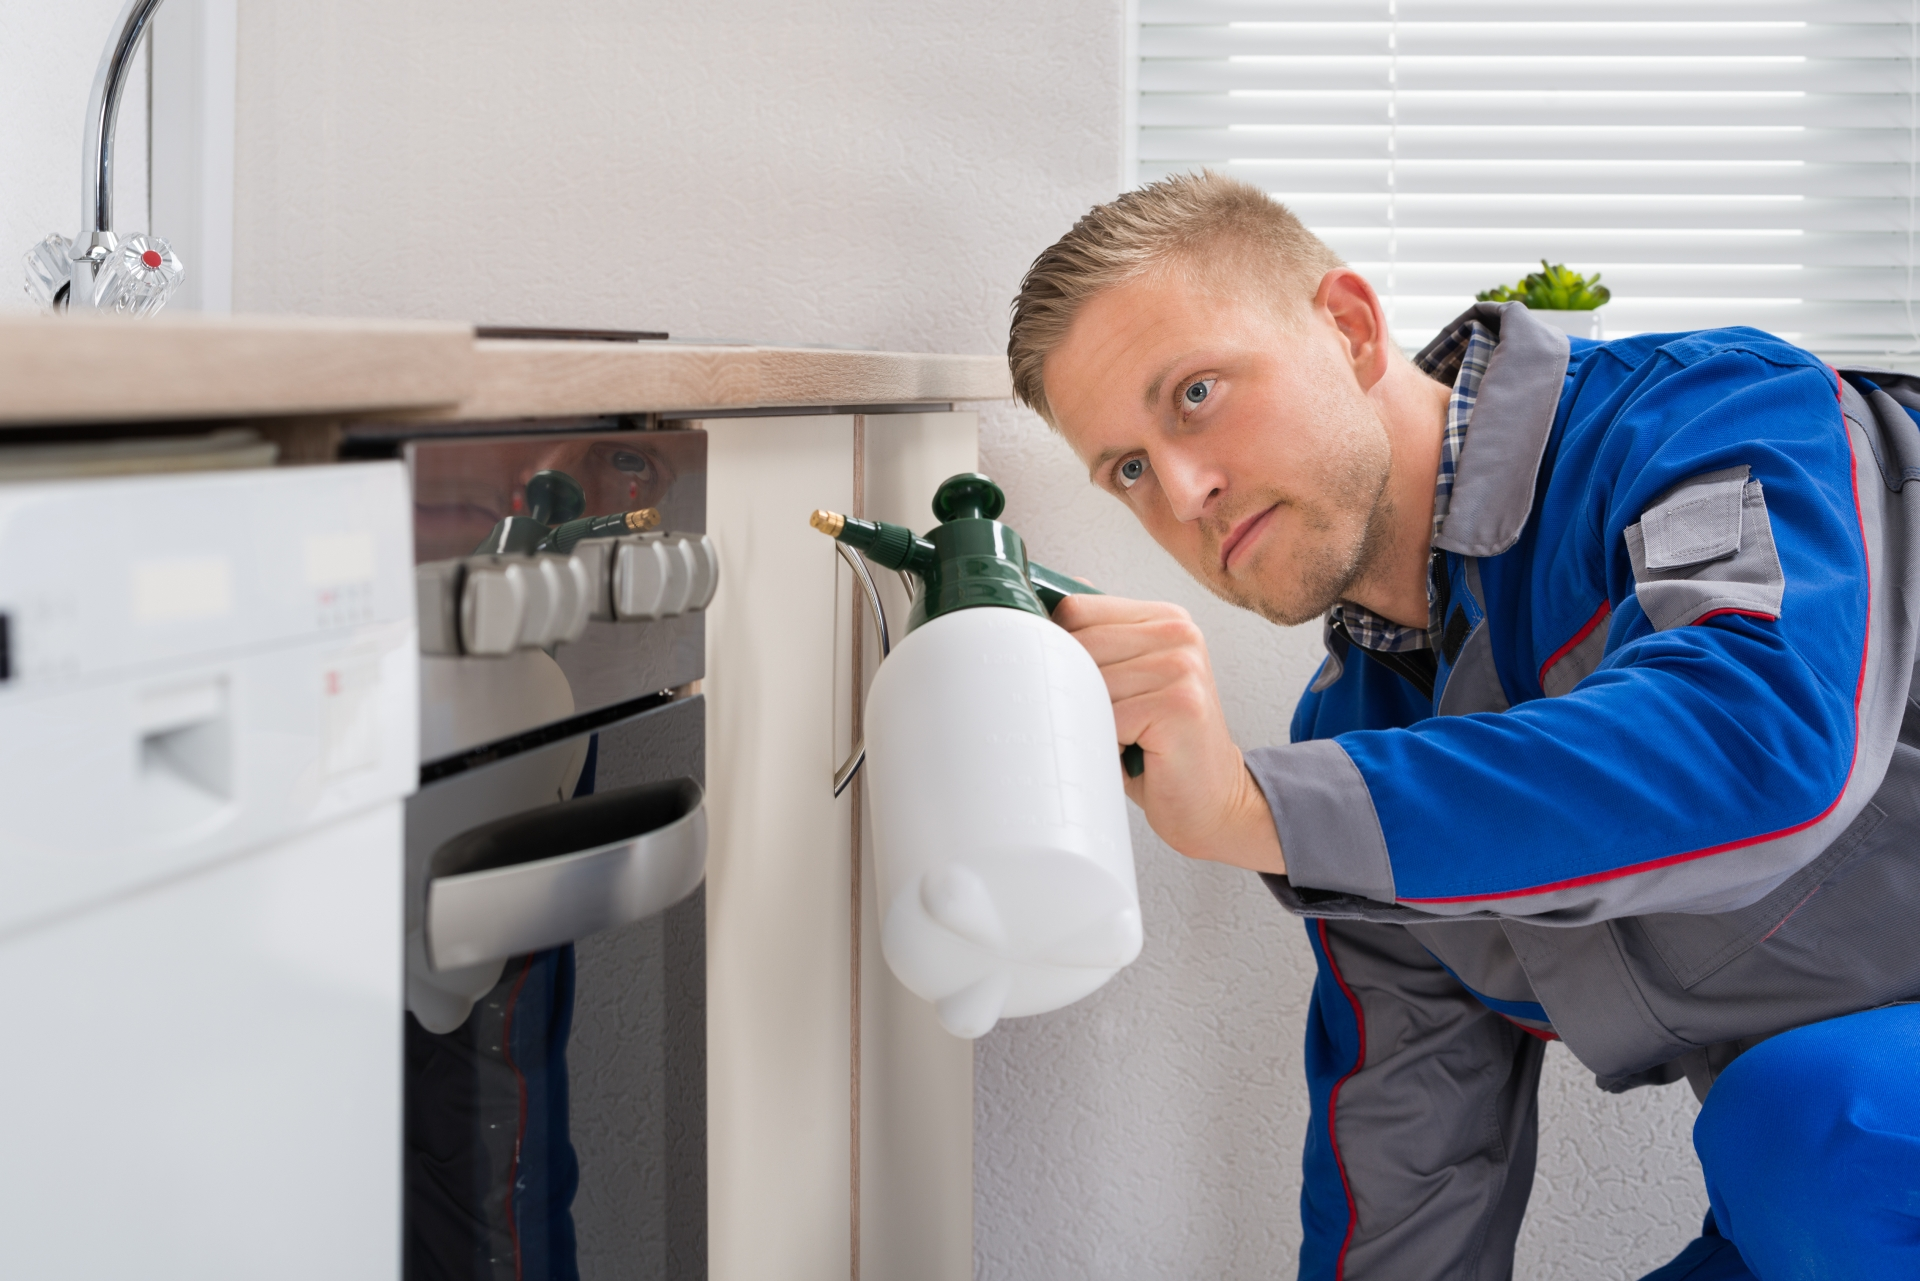 Pest Inspection, Pest Control in Raynes Park, South Wimbledon, SW20. Call Now 020 8166 9746